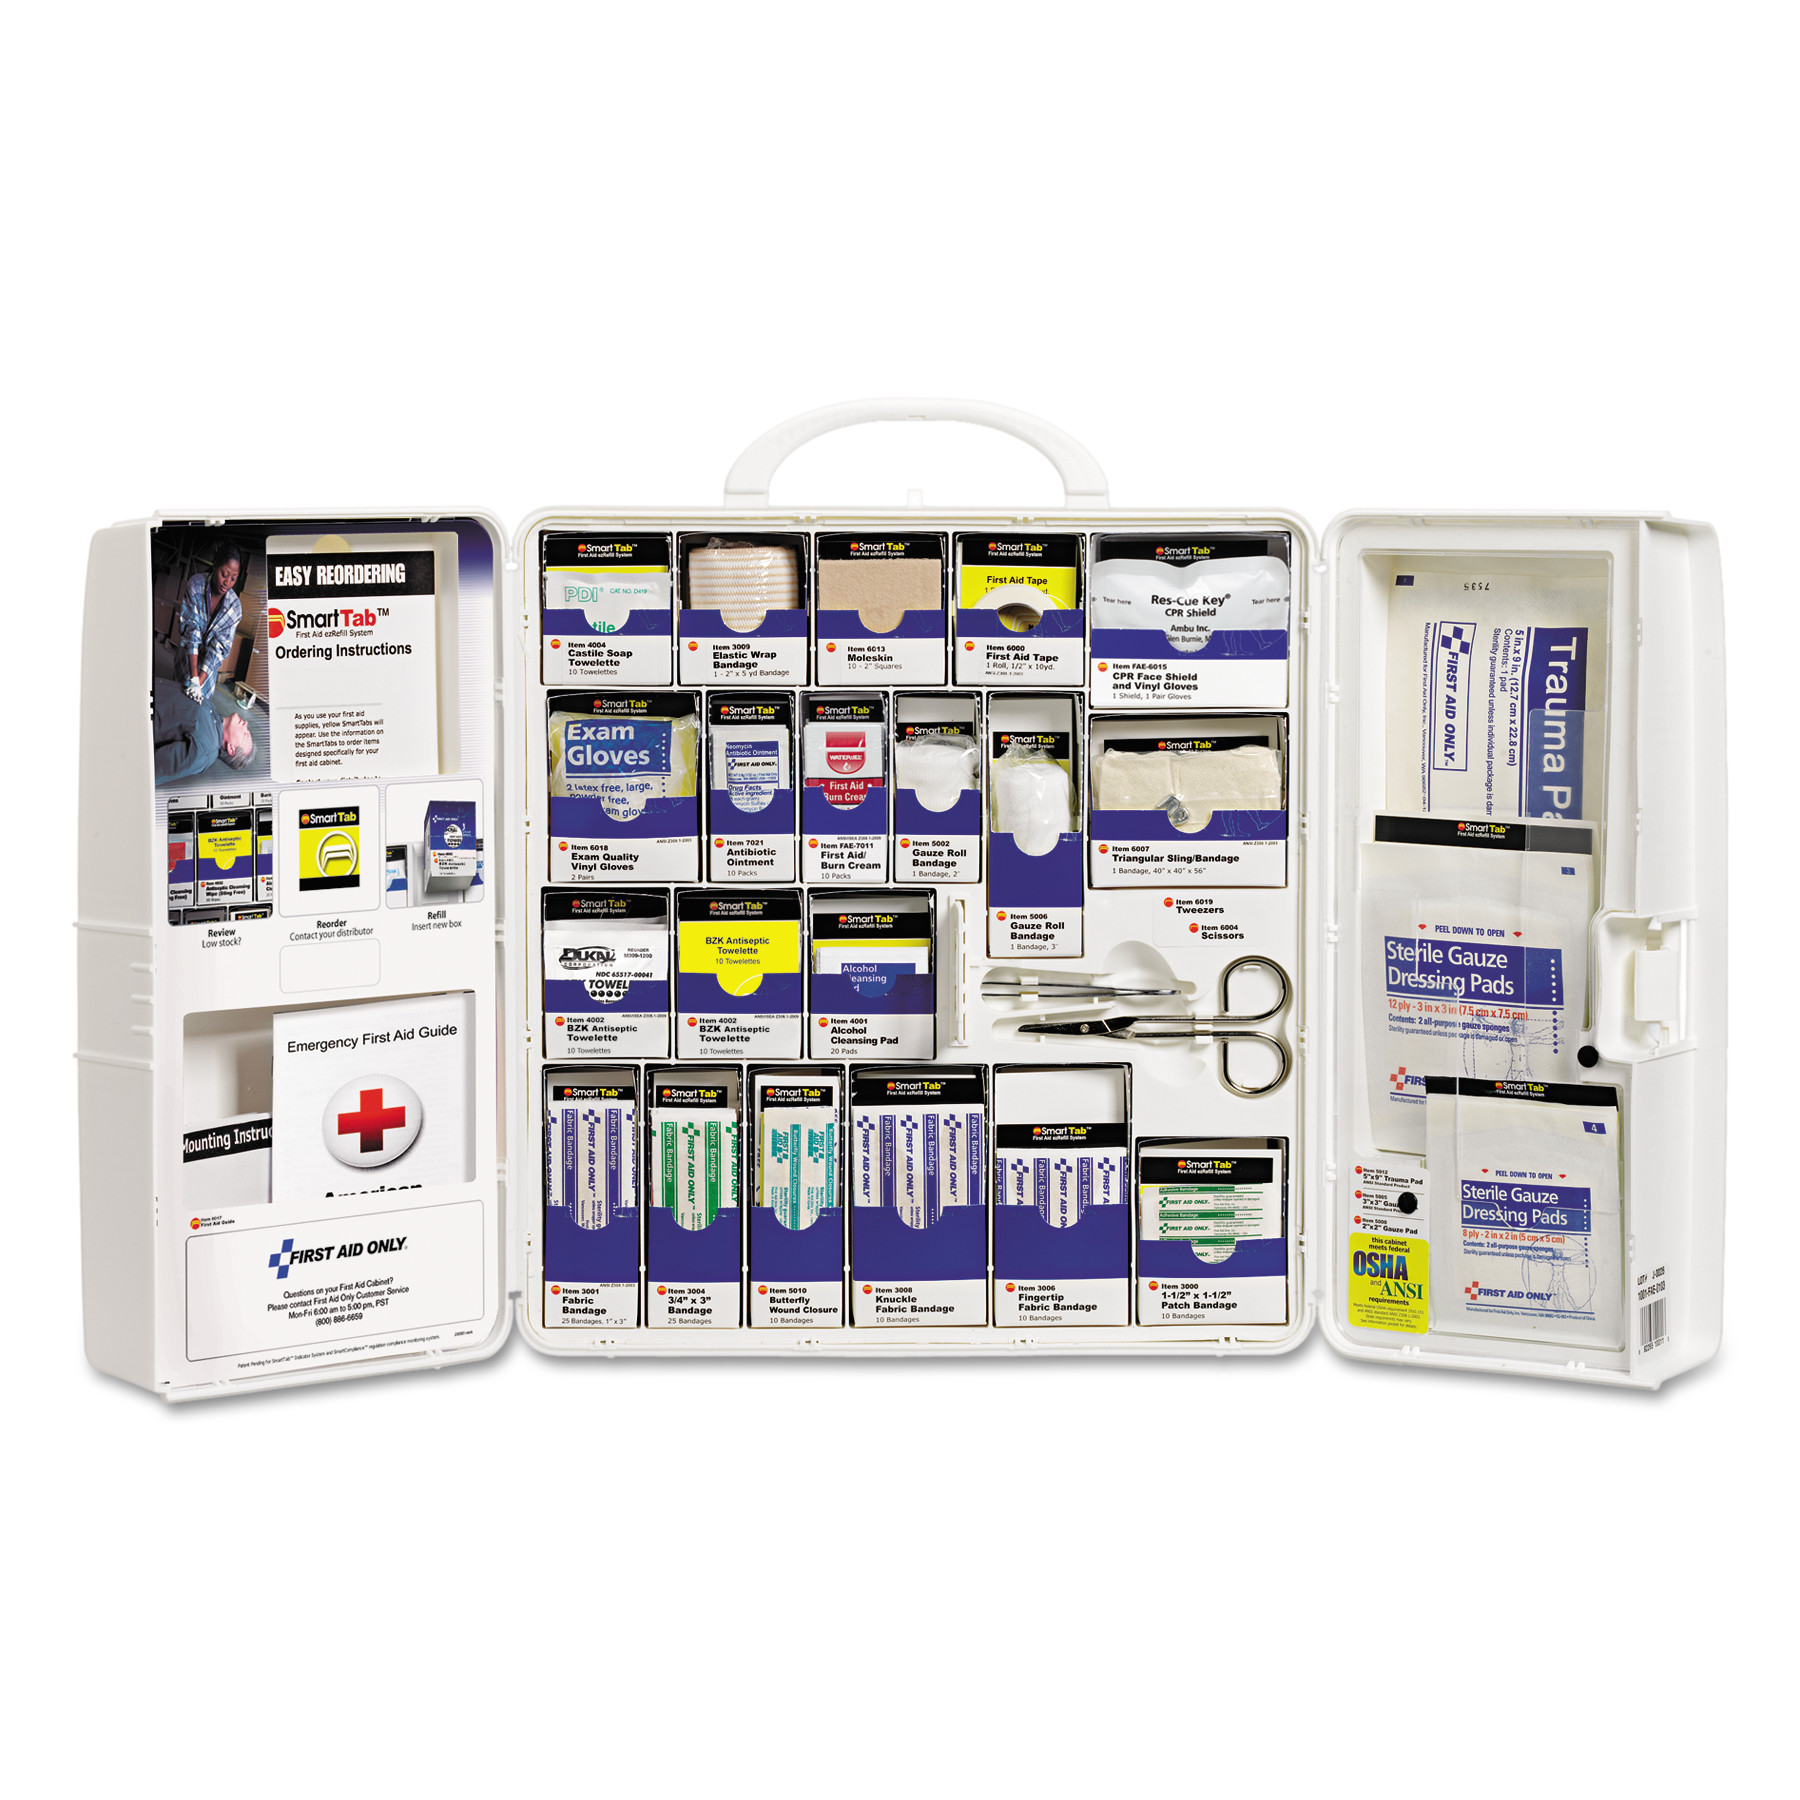 First Aid Only 50 Person Large SmartCompliance Plastic Cabinet w/o Medications, 206 Pc